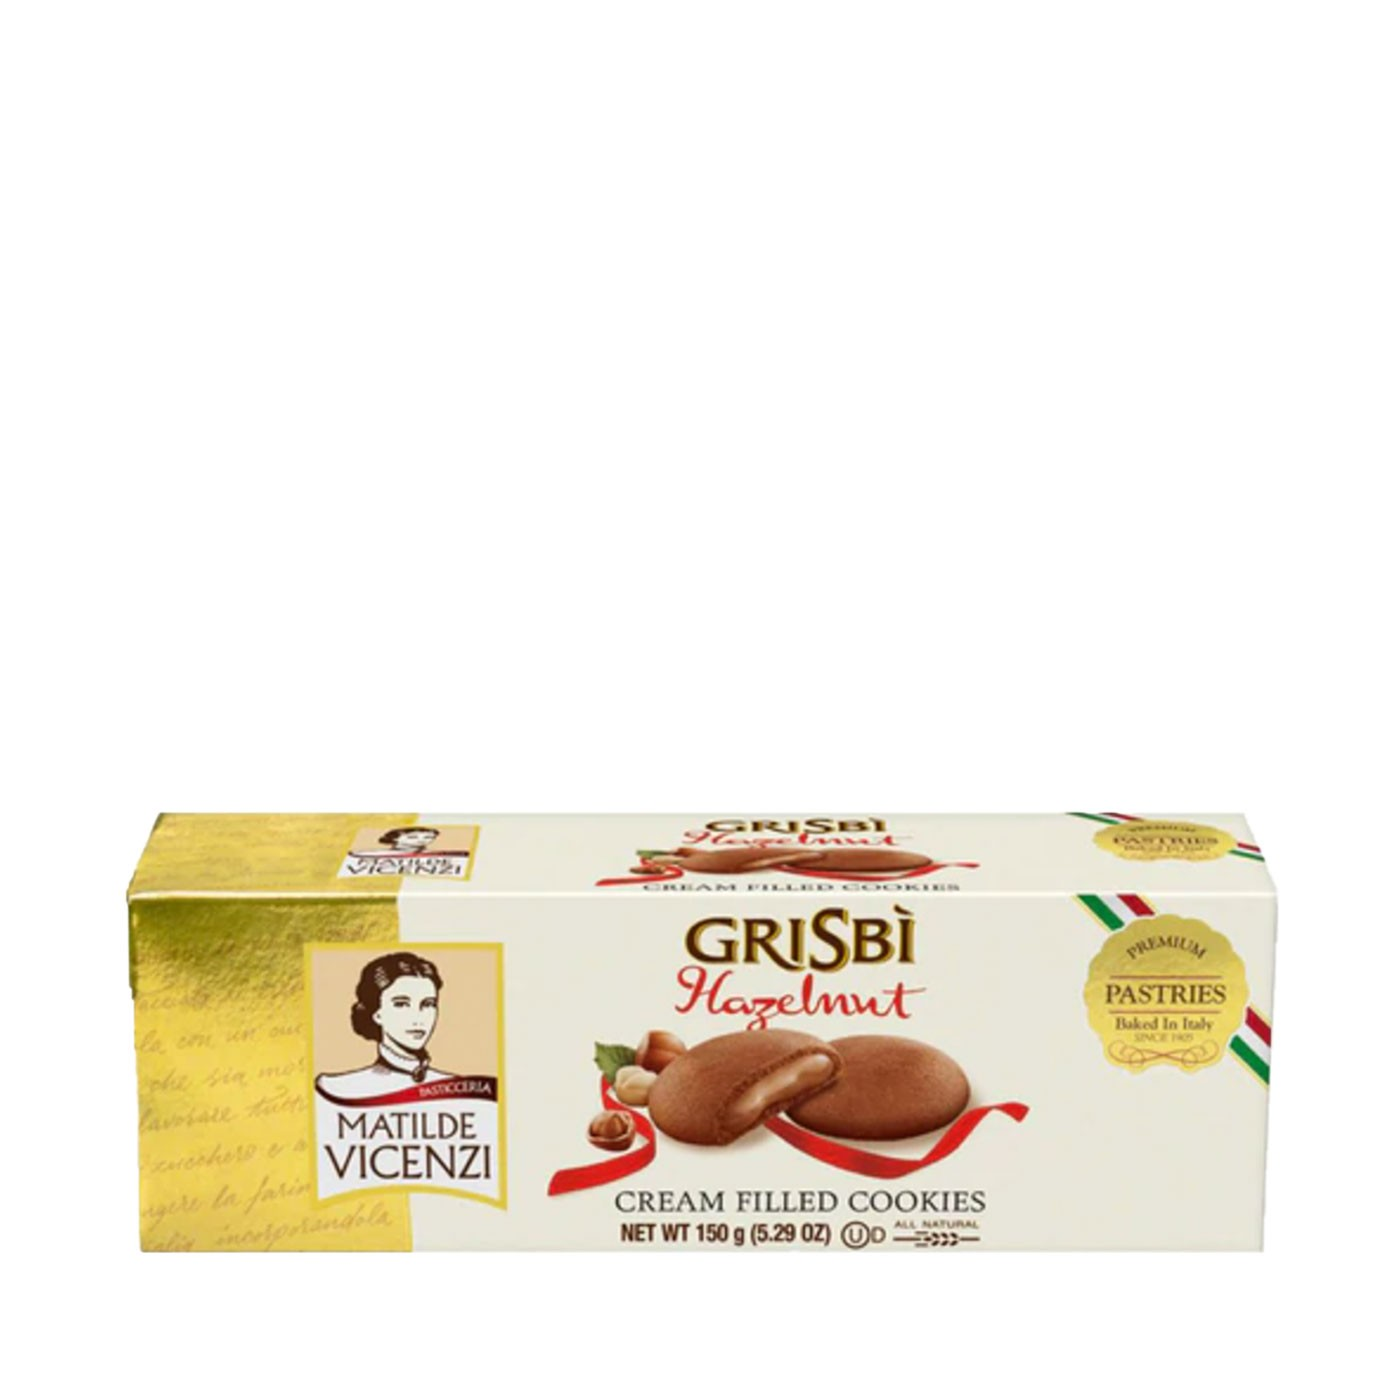 Grisbì Hazelnut Cream-Filled Cookies 5.3oz